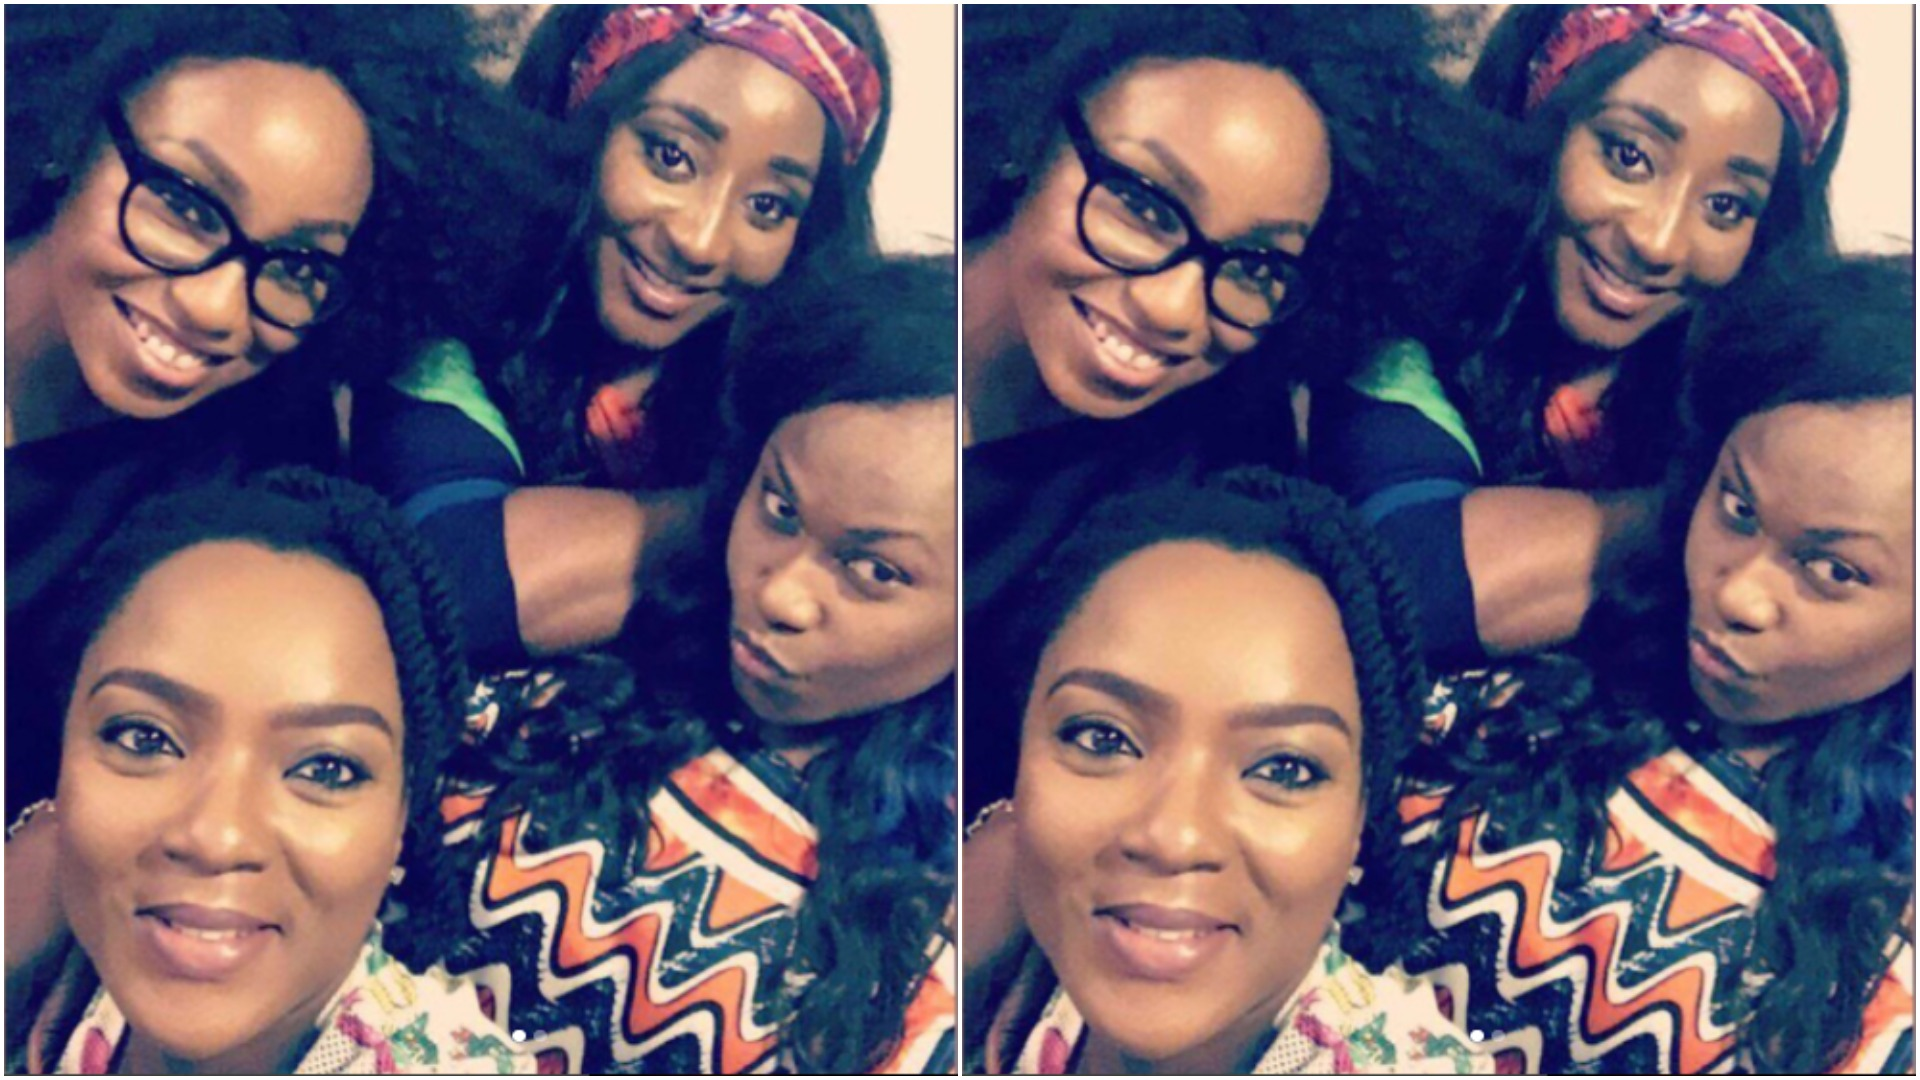 'We've come a long way' - Rita Dominic after catching up with Uche Jombo, Ini Edo and Chioma Akpotha